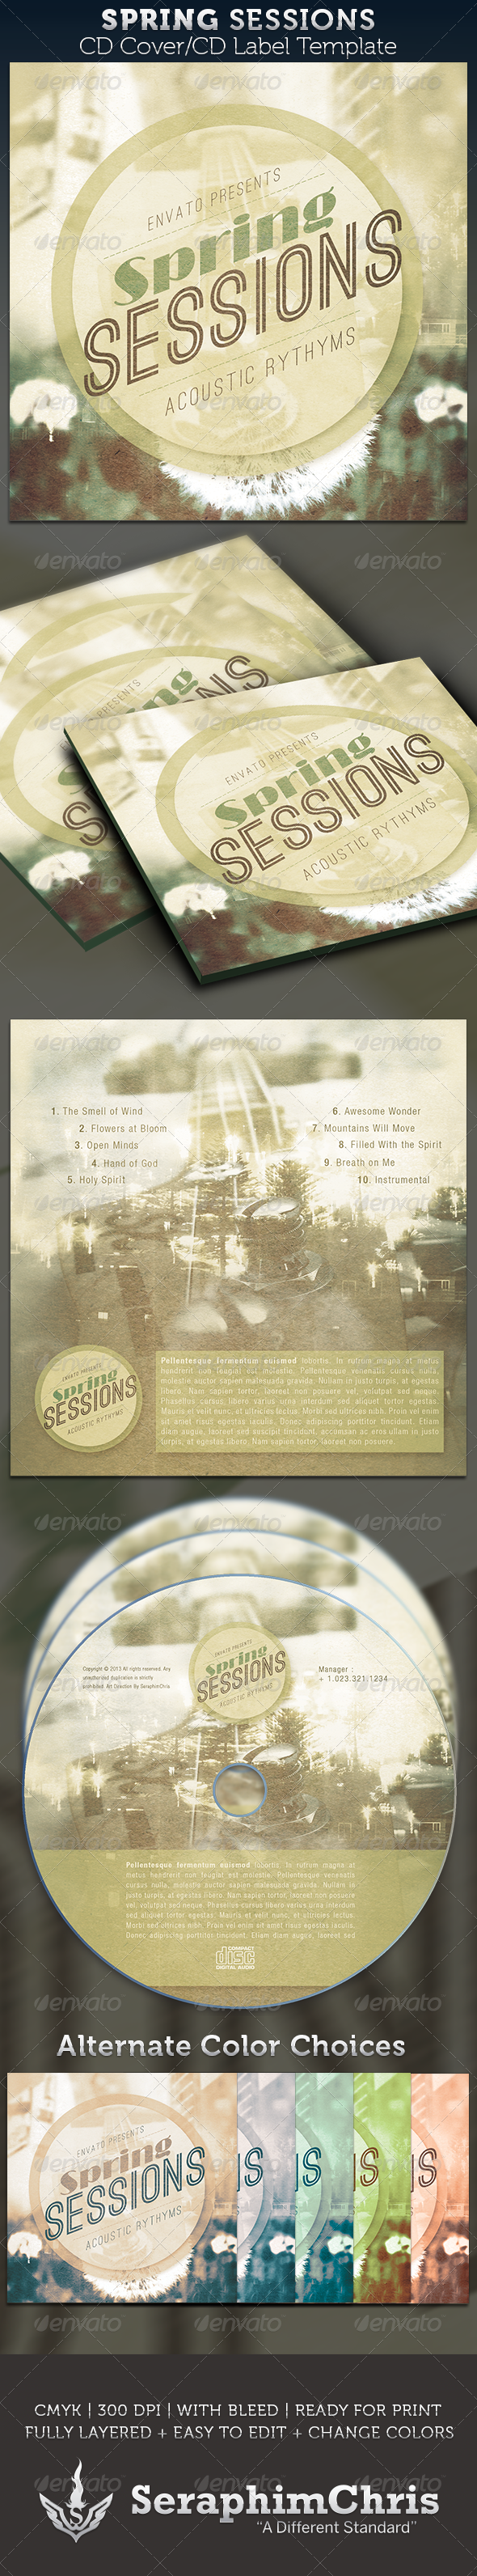 Spring Sessions CD Cover Artwork Template - CD & DVD artwork Print Templates